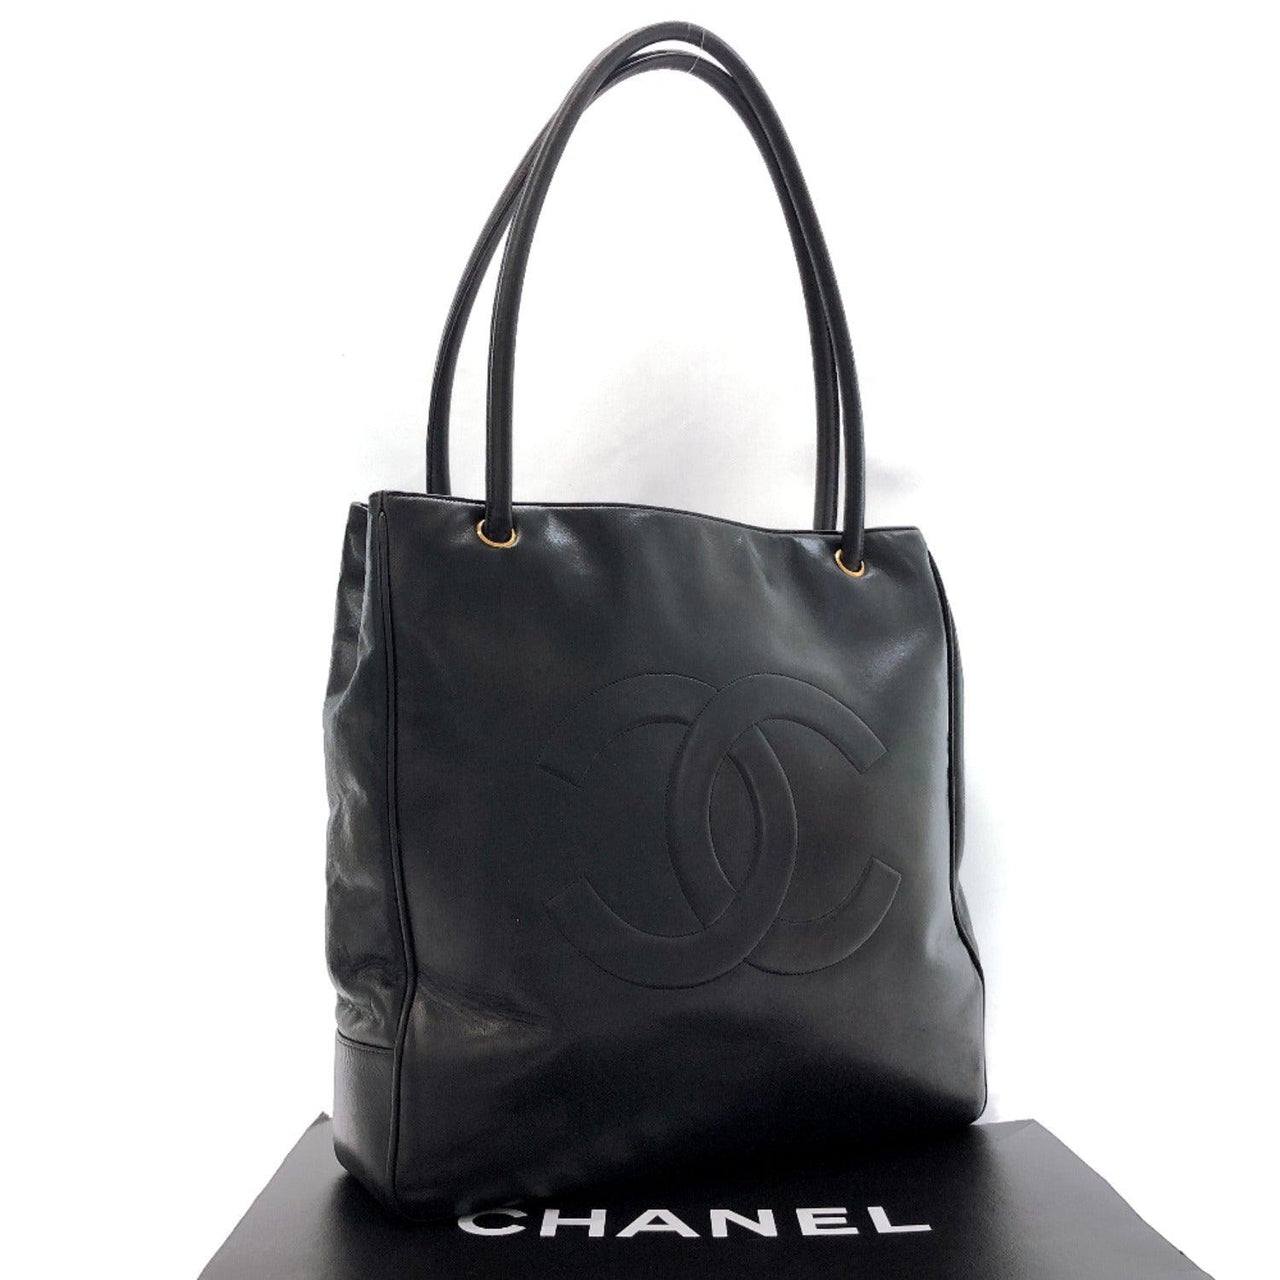 CHANEL Tote Bag COCO Mark leather black Women Used